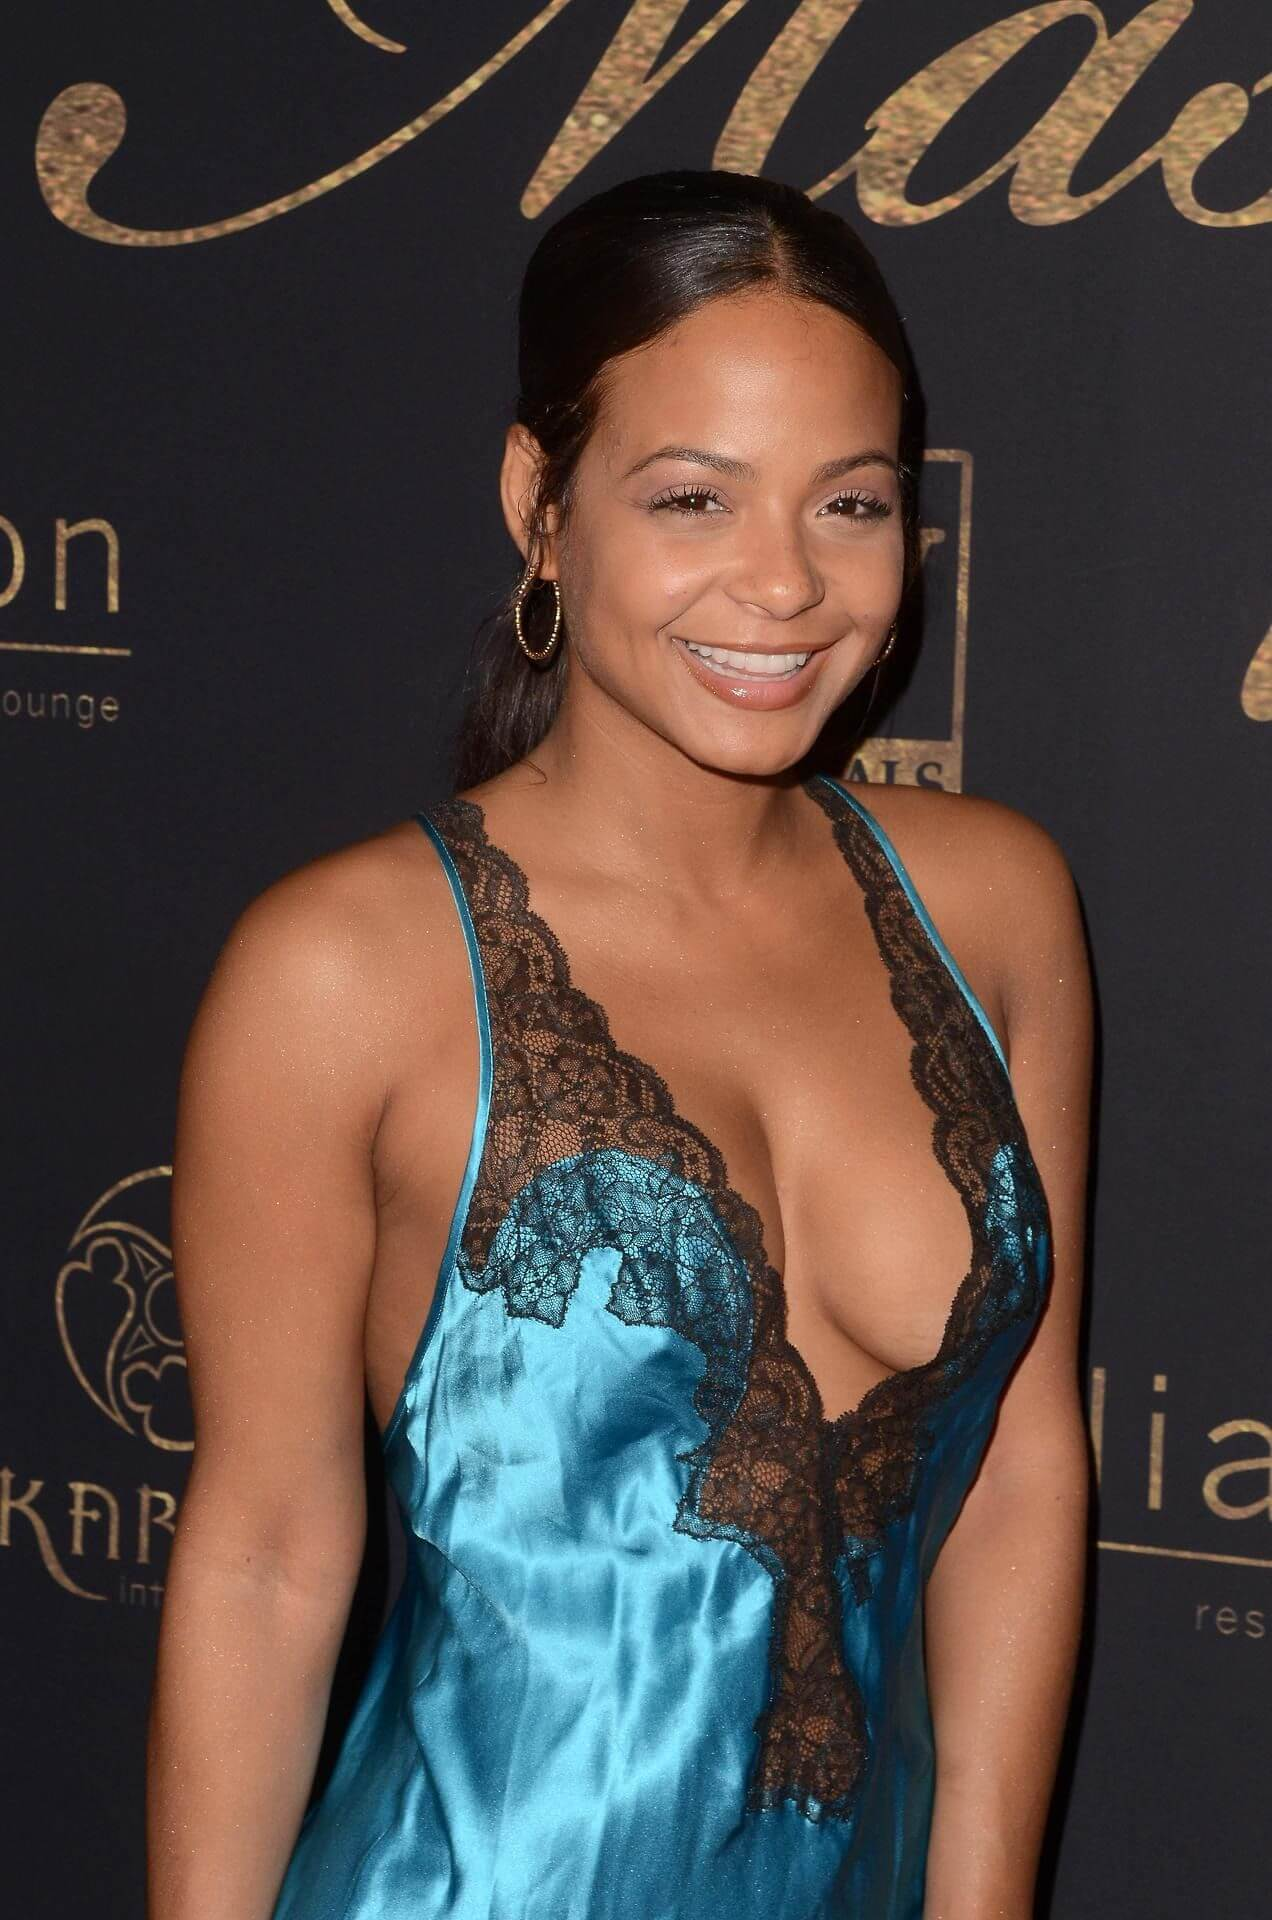 CHRISTINA MILIAN cleavage pic (2)